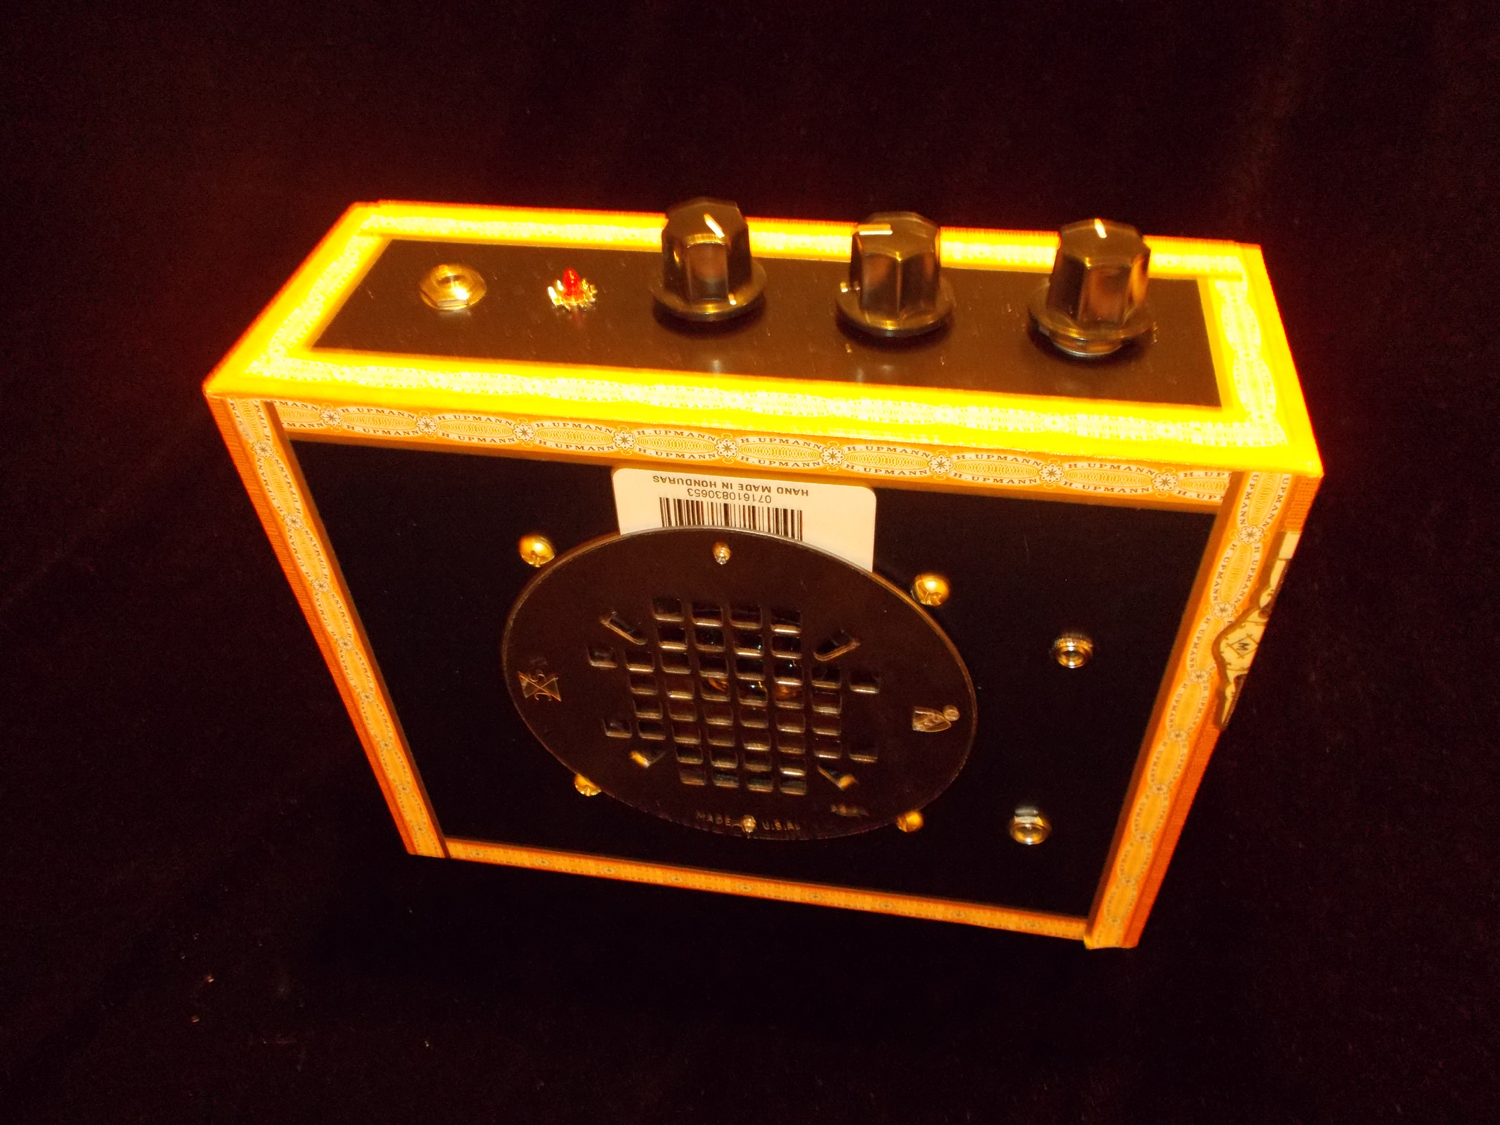 The Black H.Upman 5 watt Amp